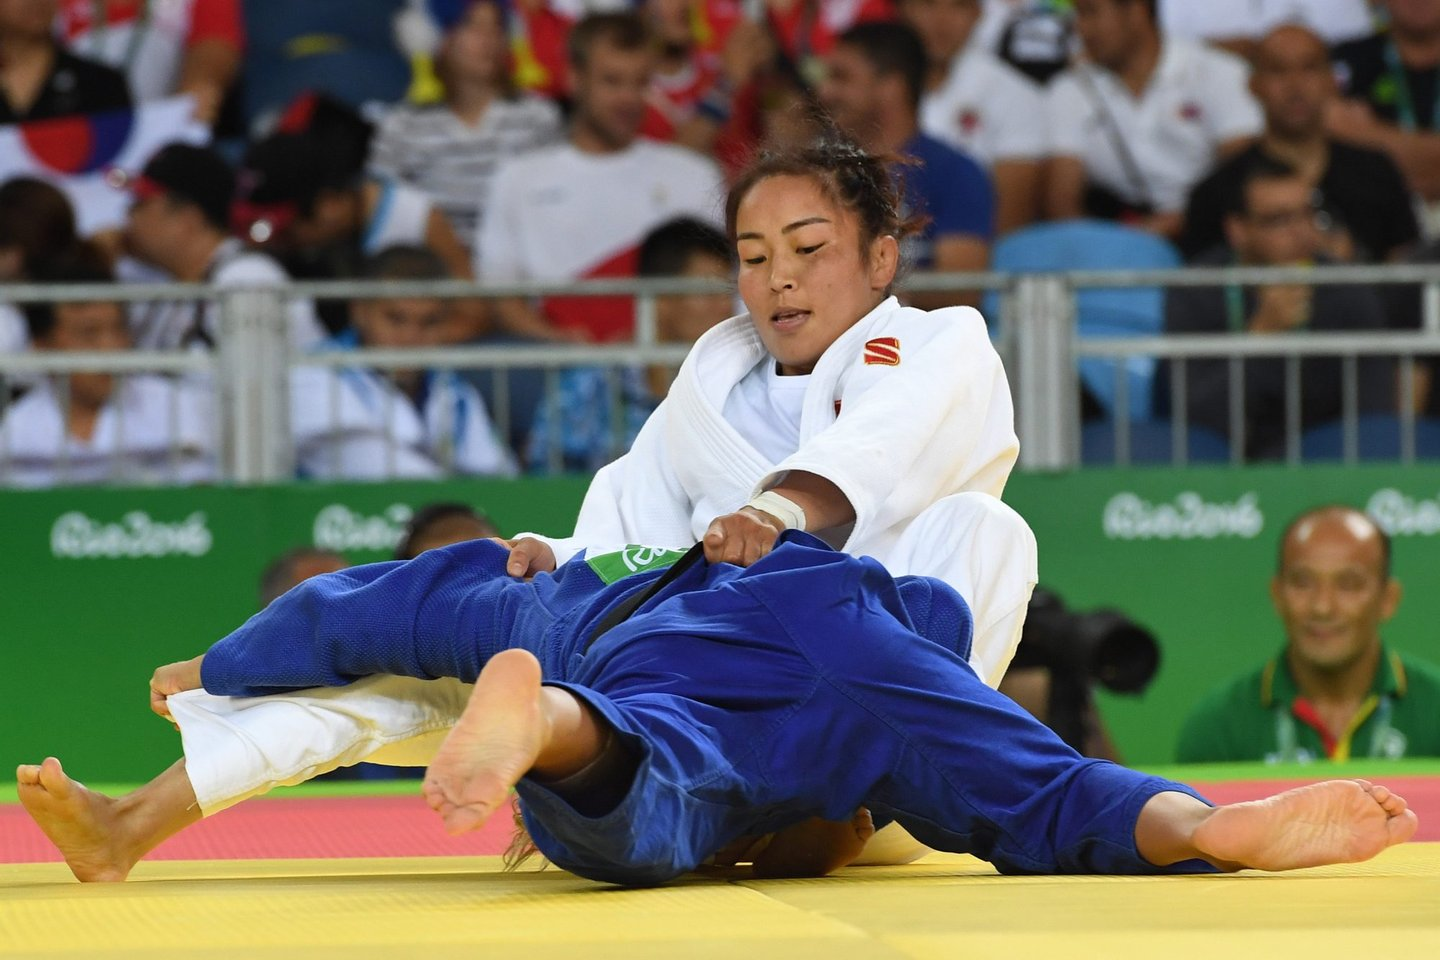 Mongolia's Sumiya Dorjsuren (white) competes with Portugal's Telma Monteiro during their women's -57kg judo contest quarterfinal match of the Rio 2016 Olympic Games in Rio de Janeiro on August 8, 2016. / AFP / Toshifumi KITAMURA (Photo credit should read TOSHIFUMI KITAMURA/AFP/Getty Images)